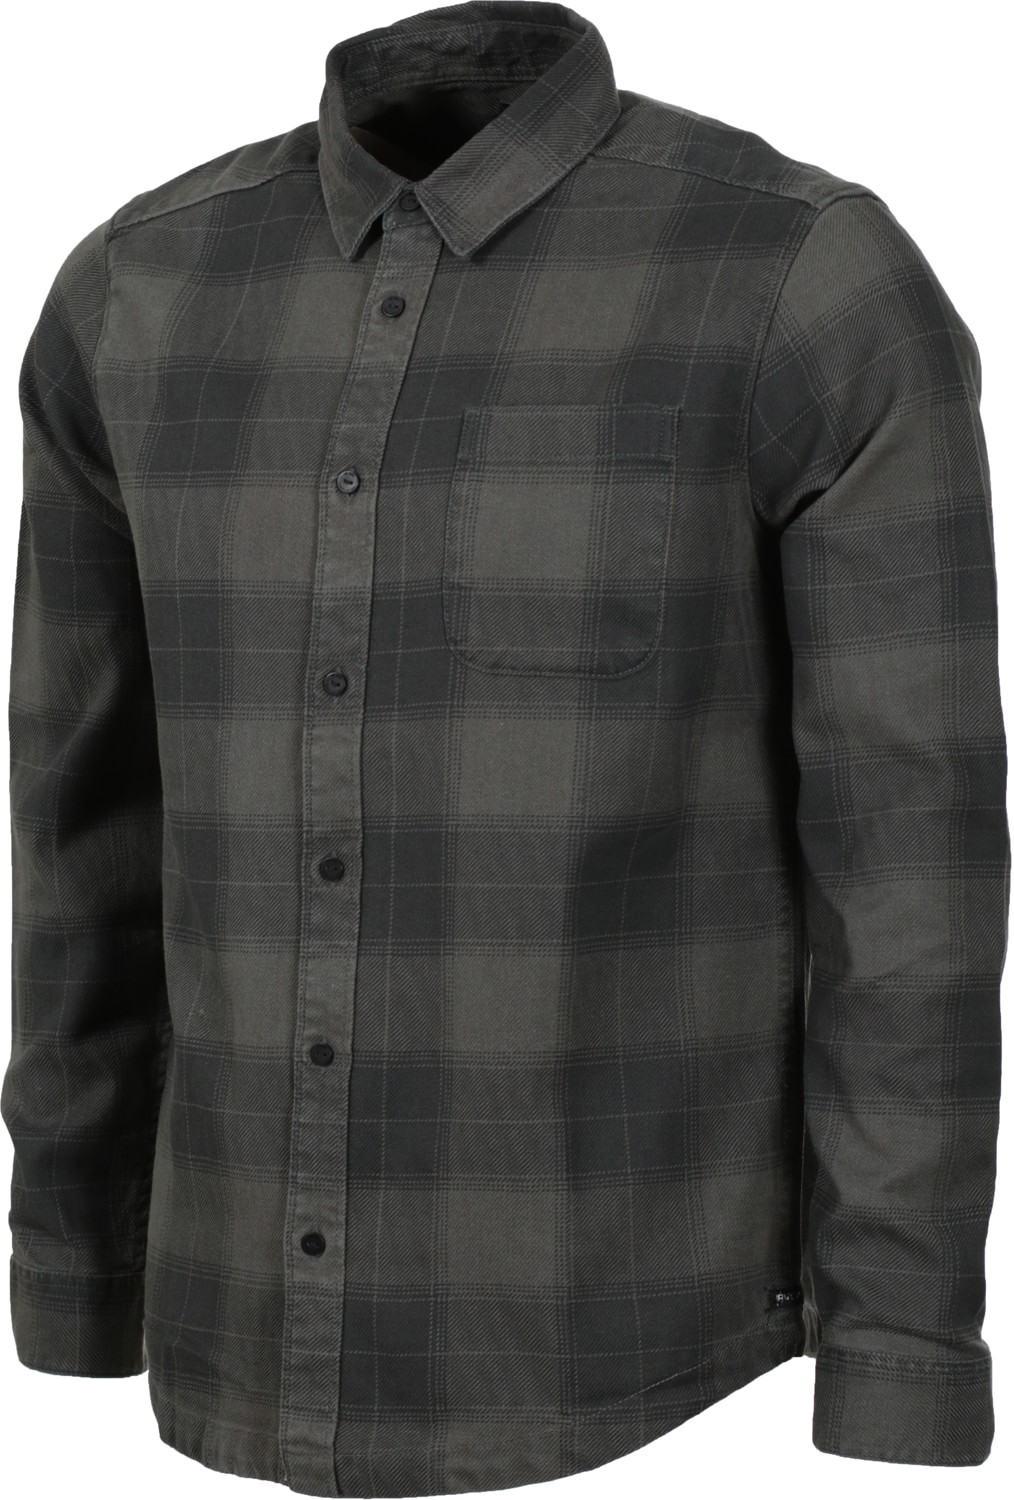 Ll Bean Flannel Shirts | Flannel Shirt Mens | Quilted Flannel Shirt